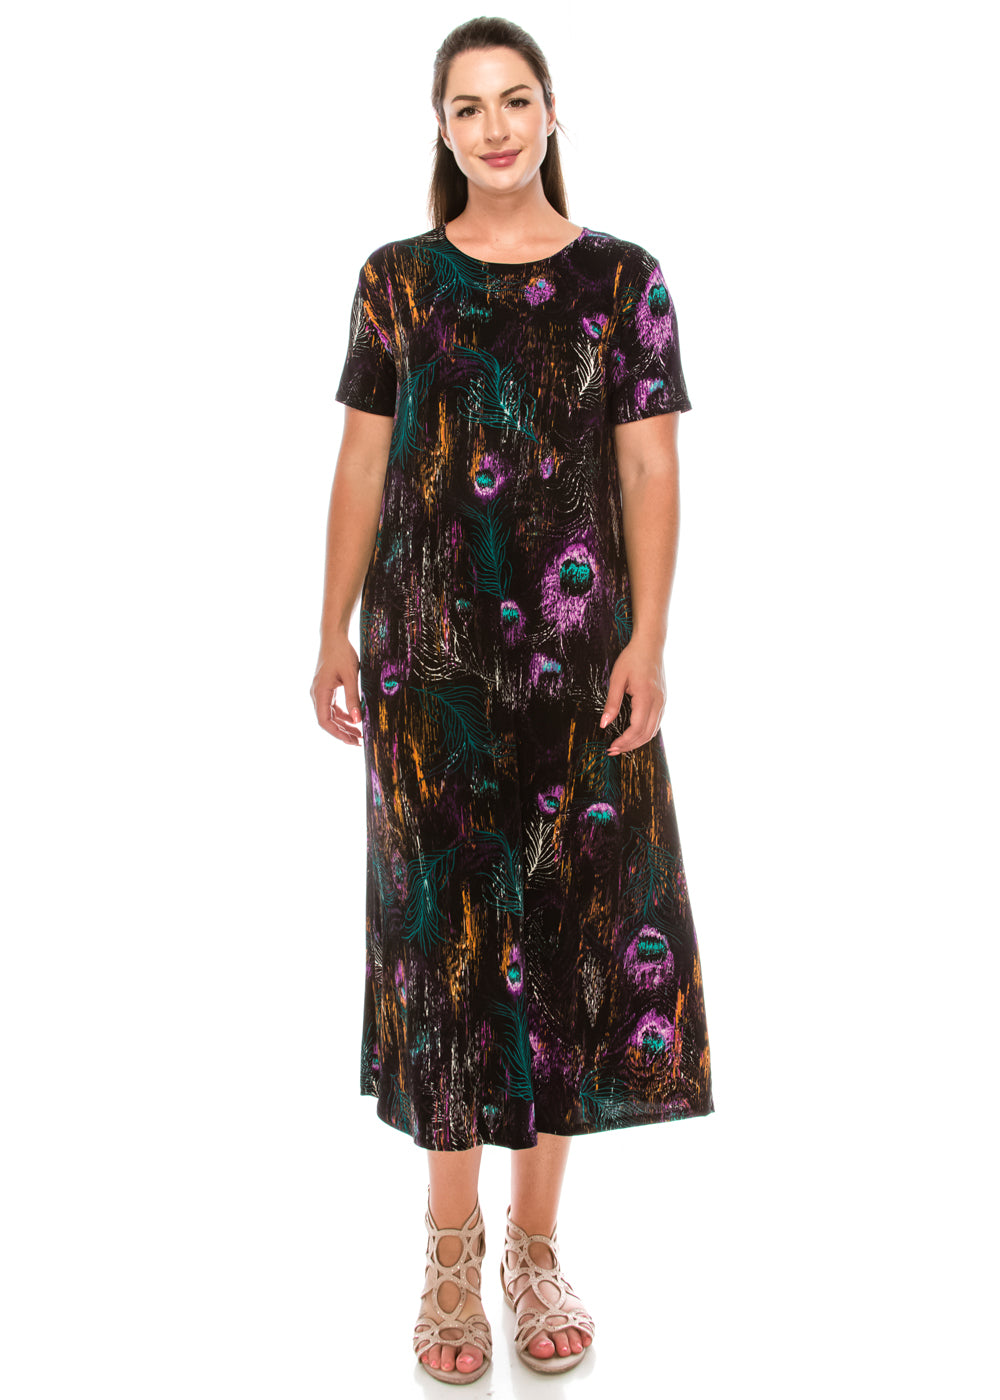 Jostar Women's Stretchy Long Dress Short Sleeve Print, 702BN-SP-W137 - Jostar Online